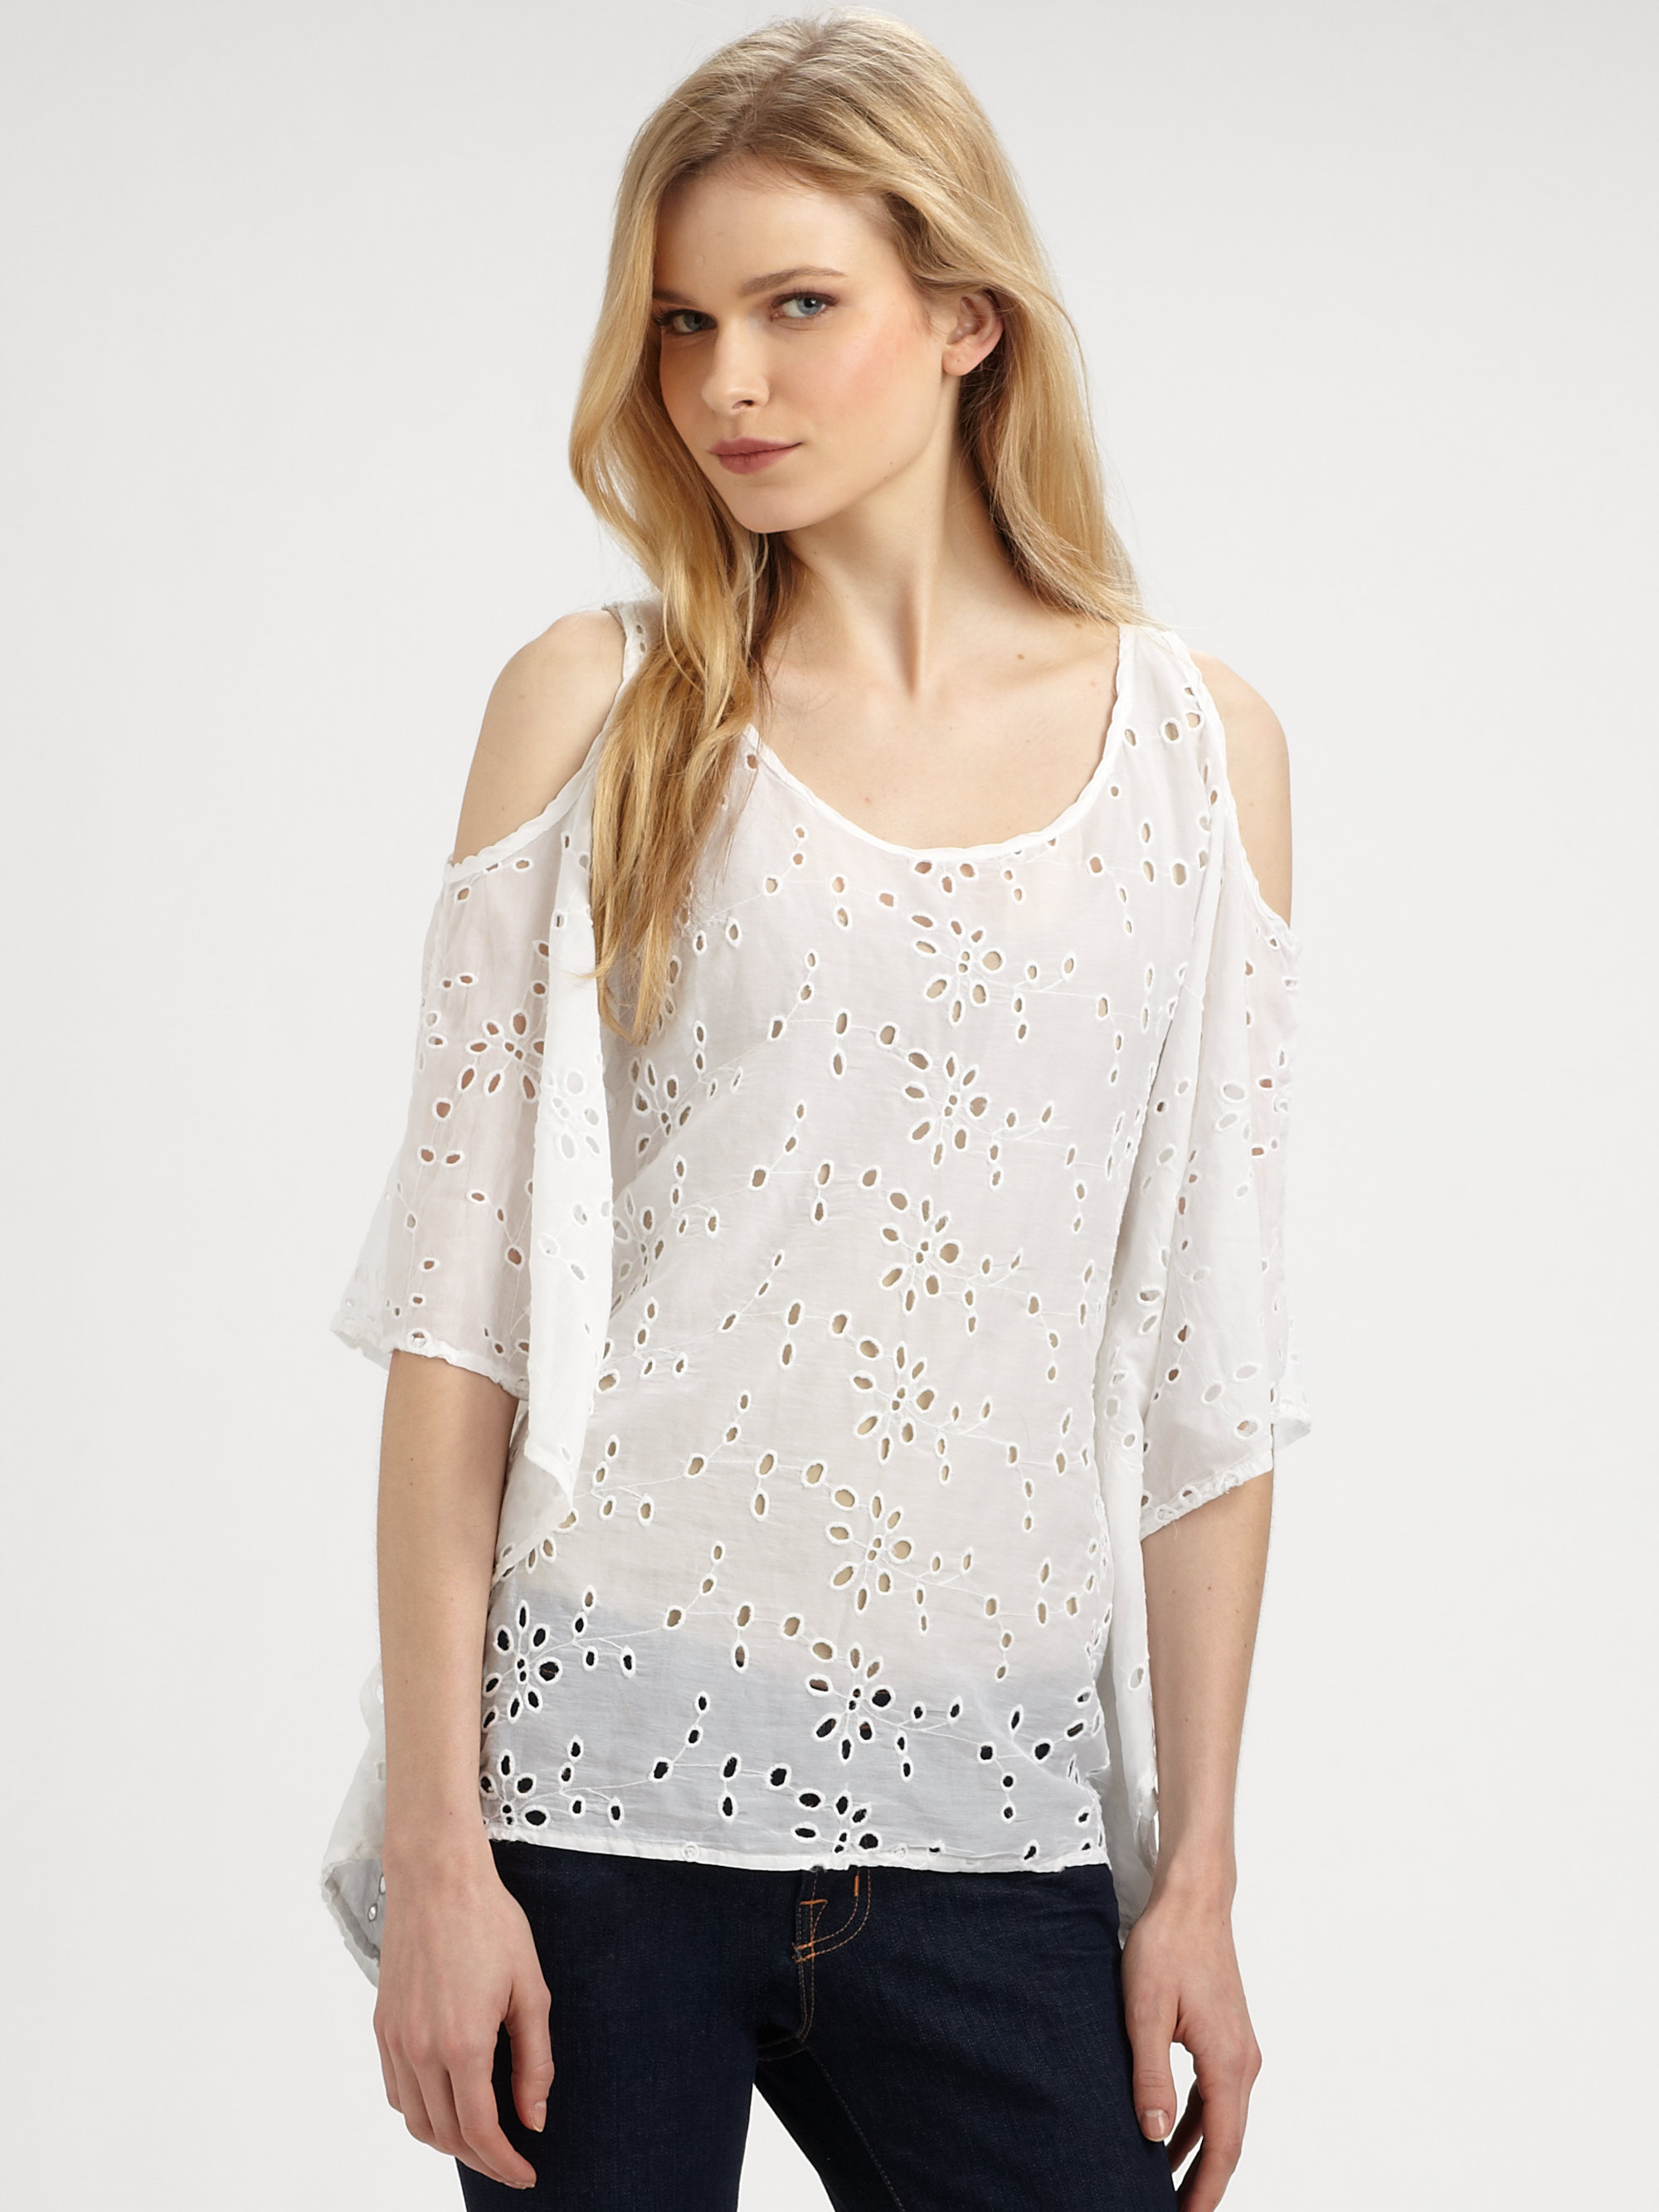 1a6d4a260d9632 Lyst - Ella Moss Annie Eyelet Cold Shoulder Top in White